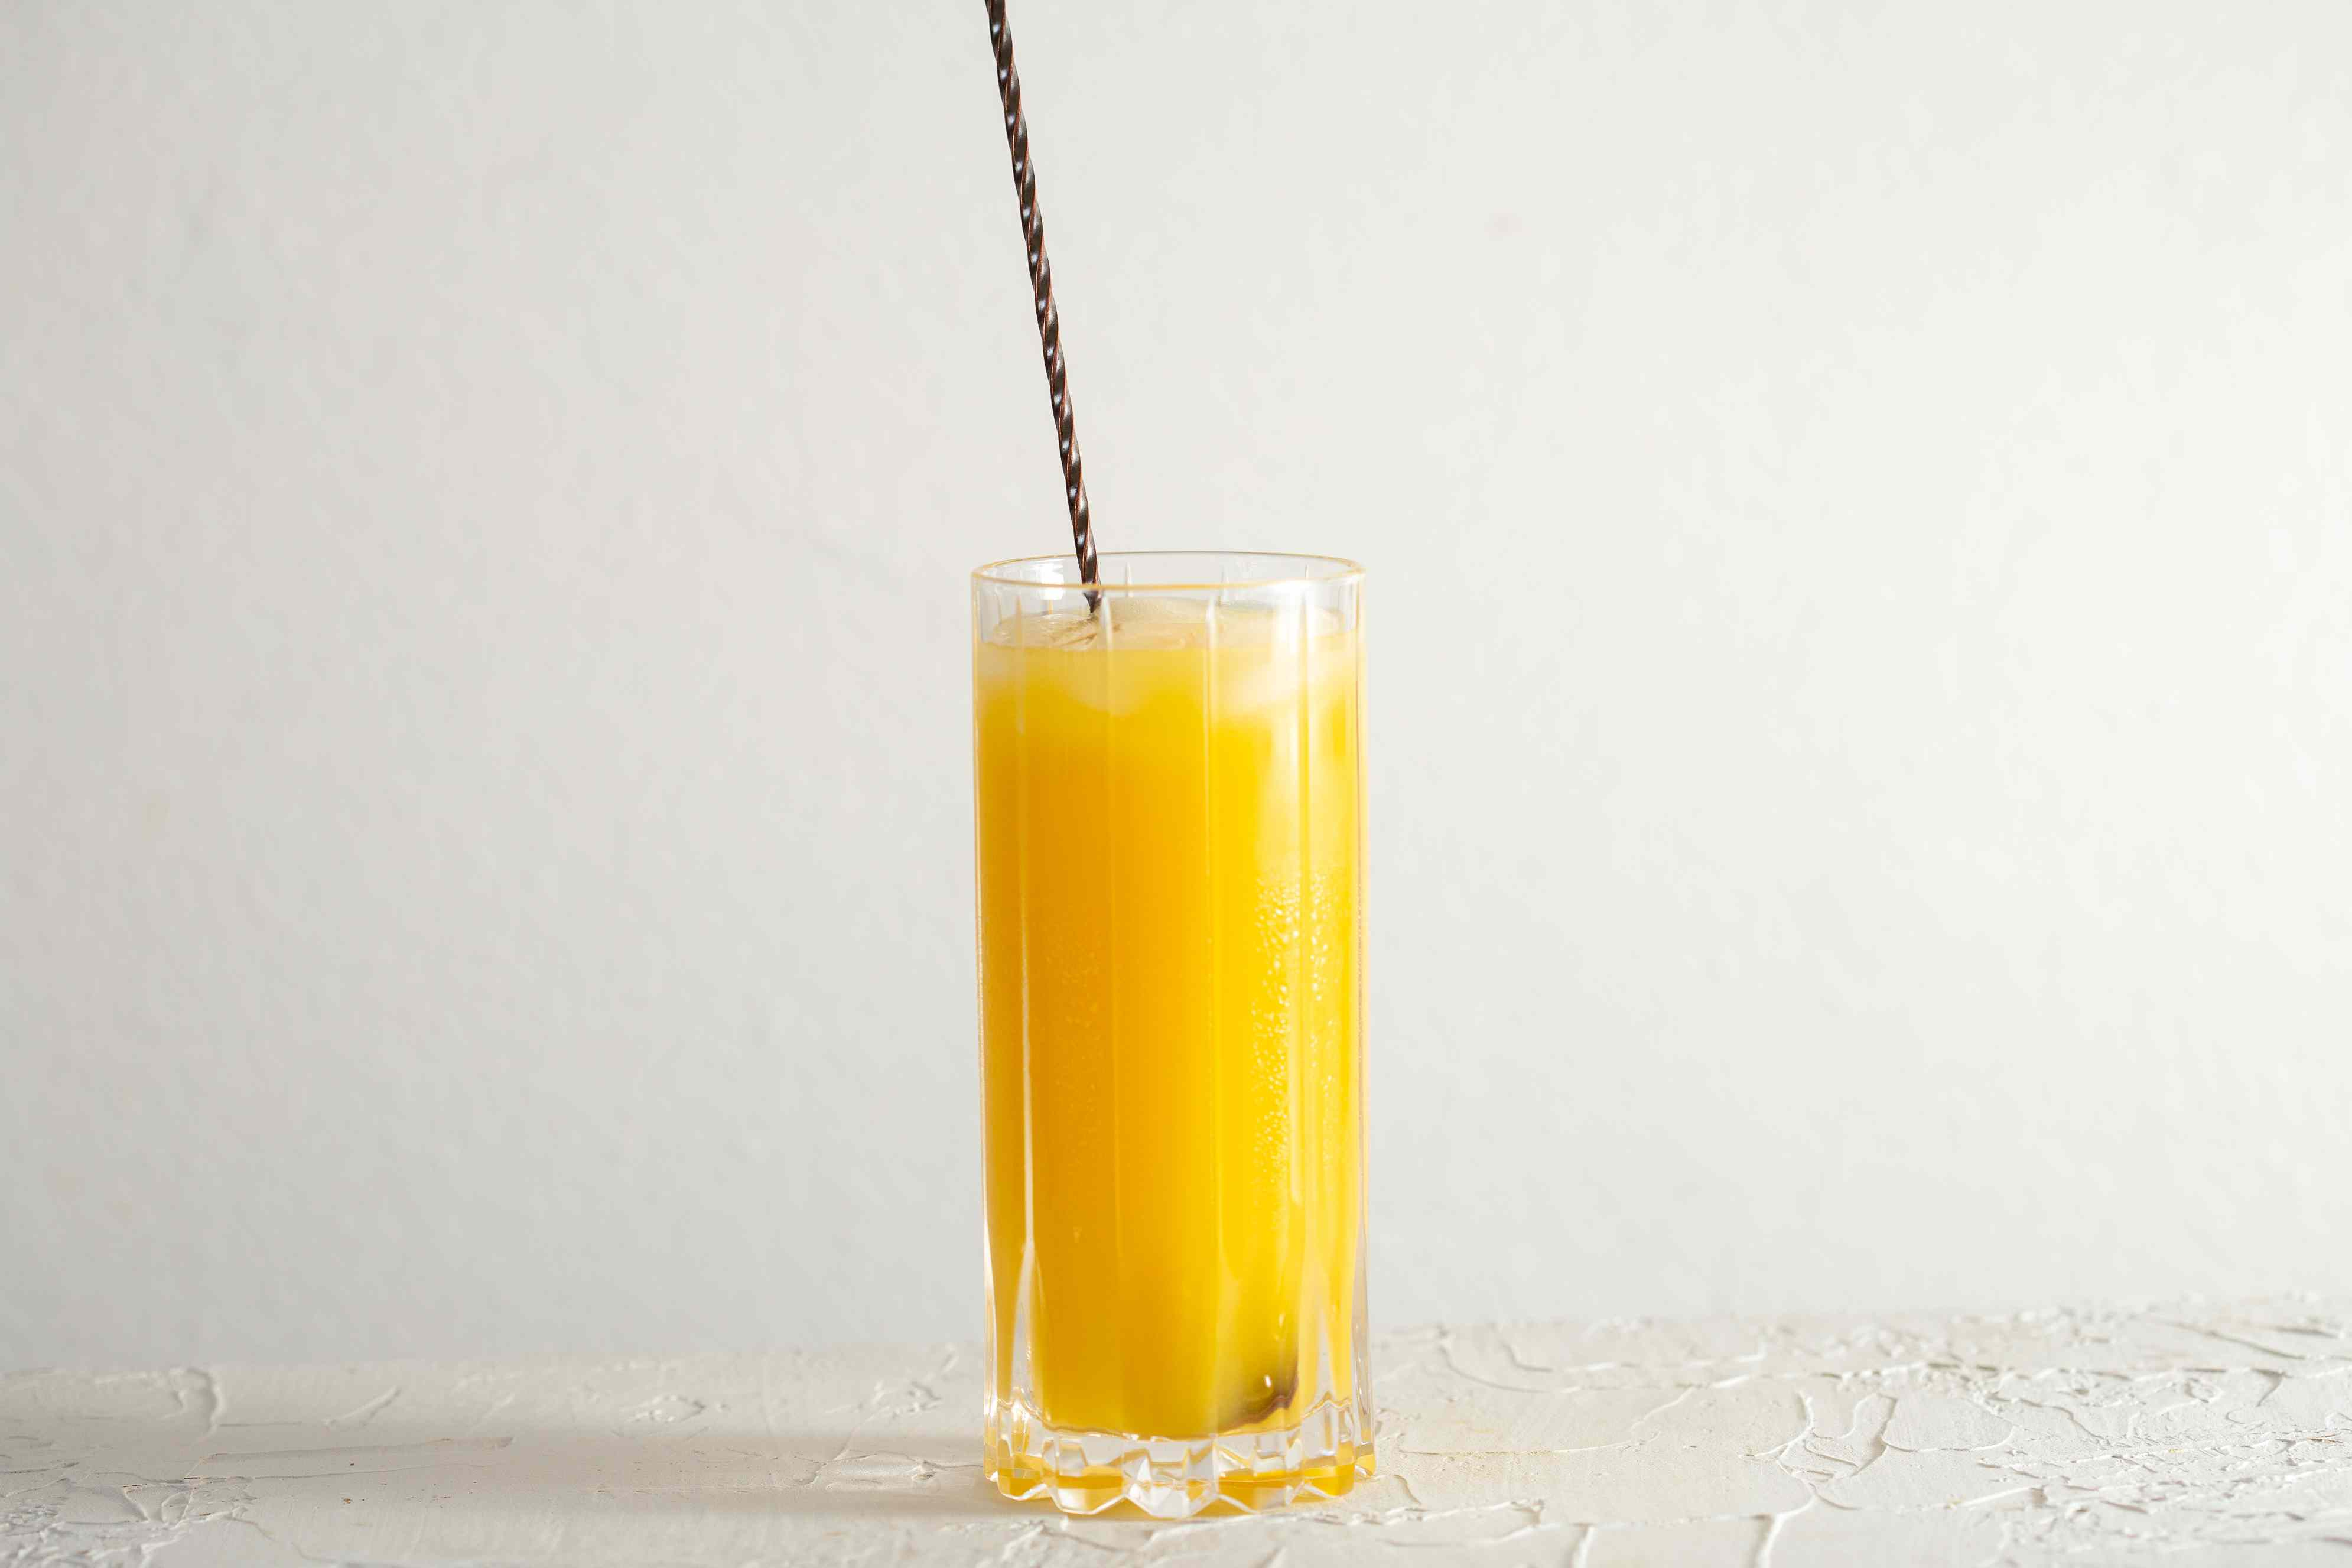 Stir well to mix the screwdriver